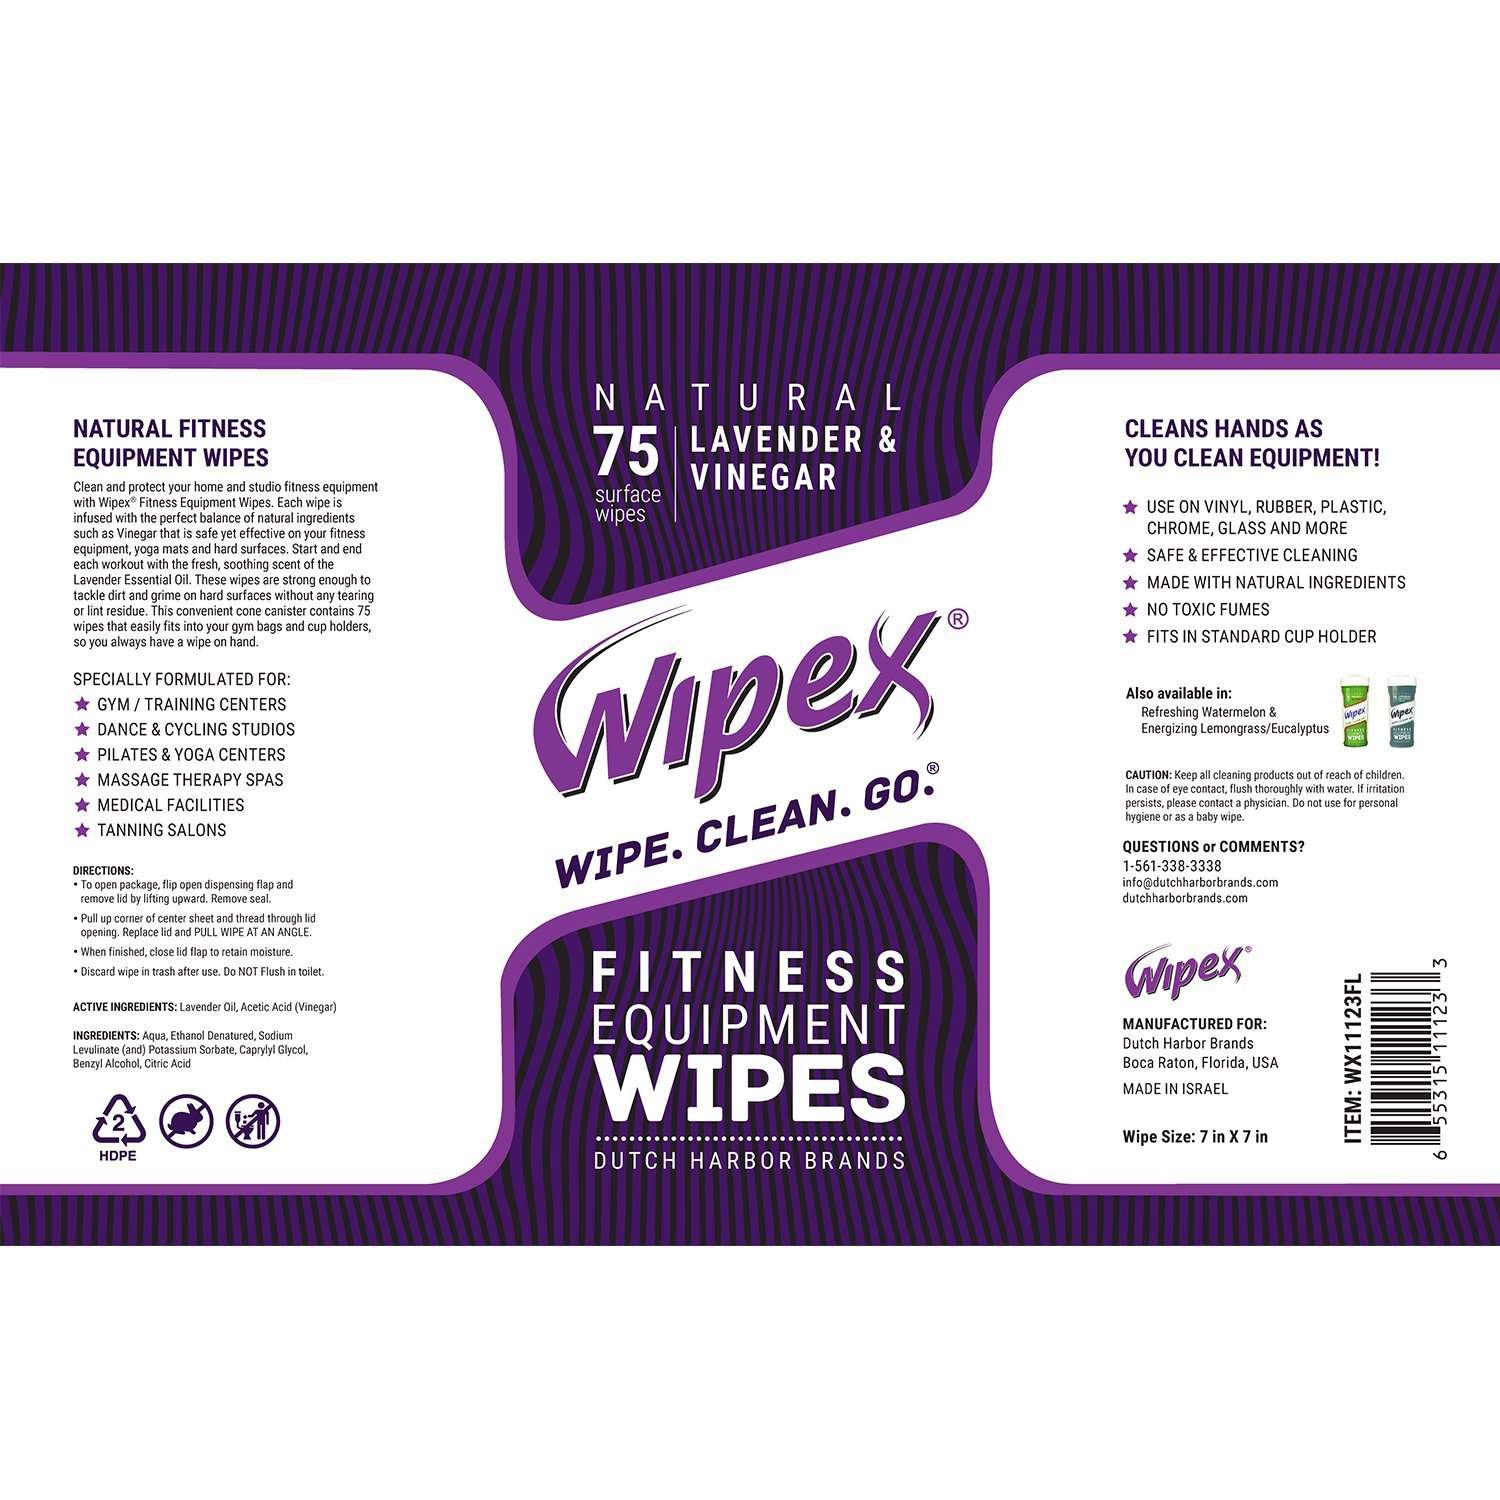 Wipex fitness canister label lavender scented